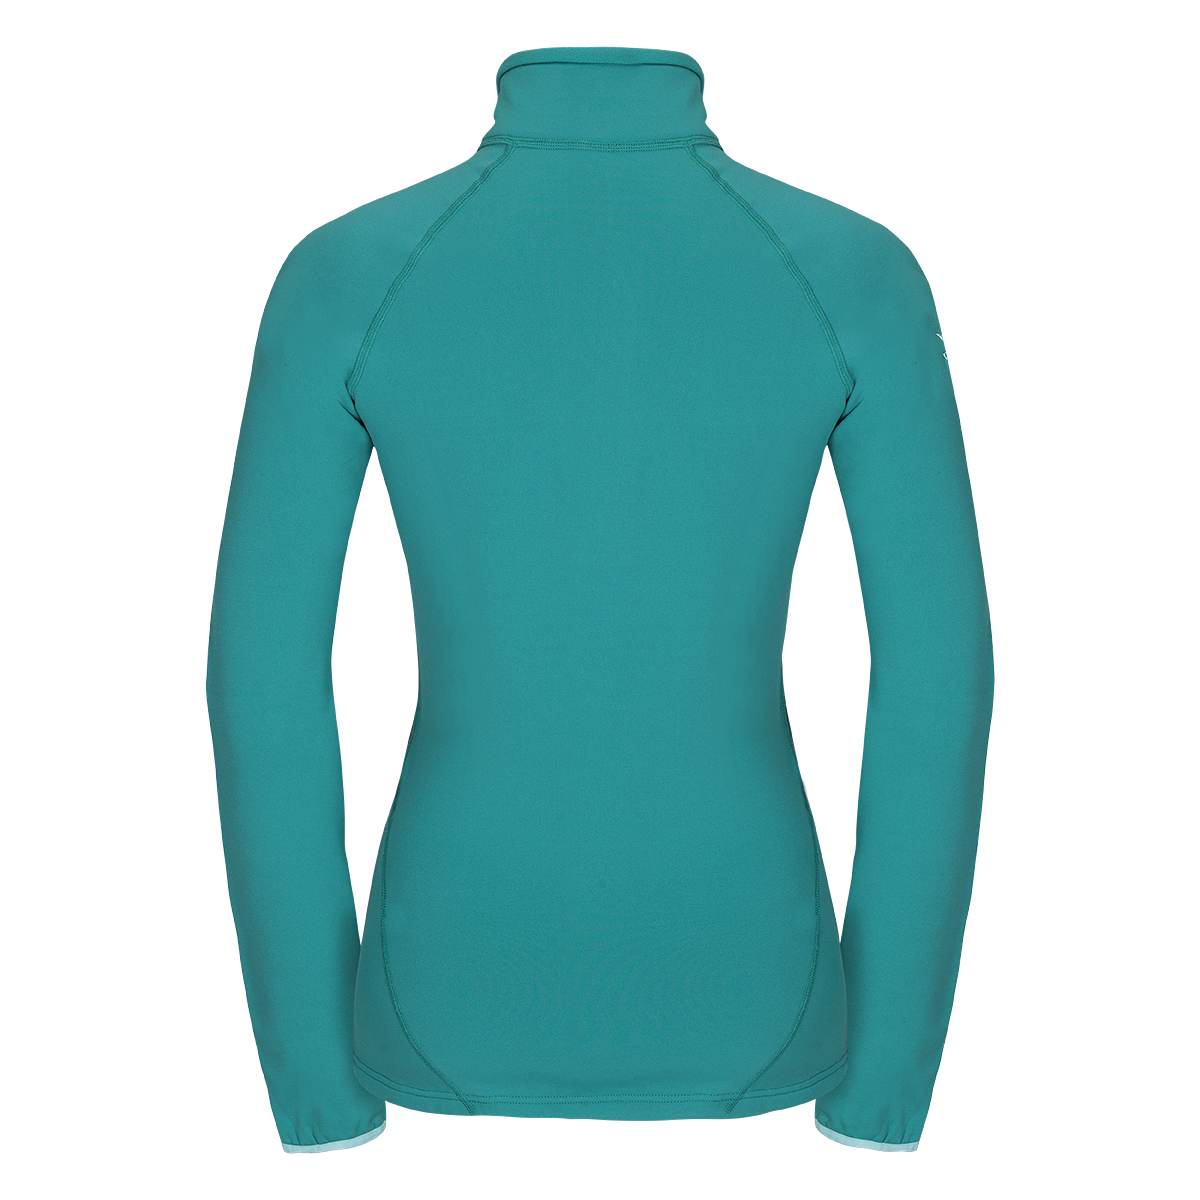 Vaude damen jacke women's drop jacket ii